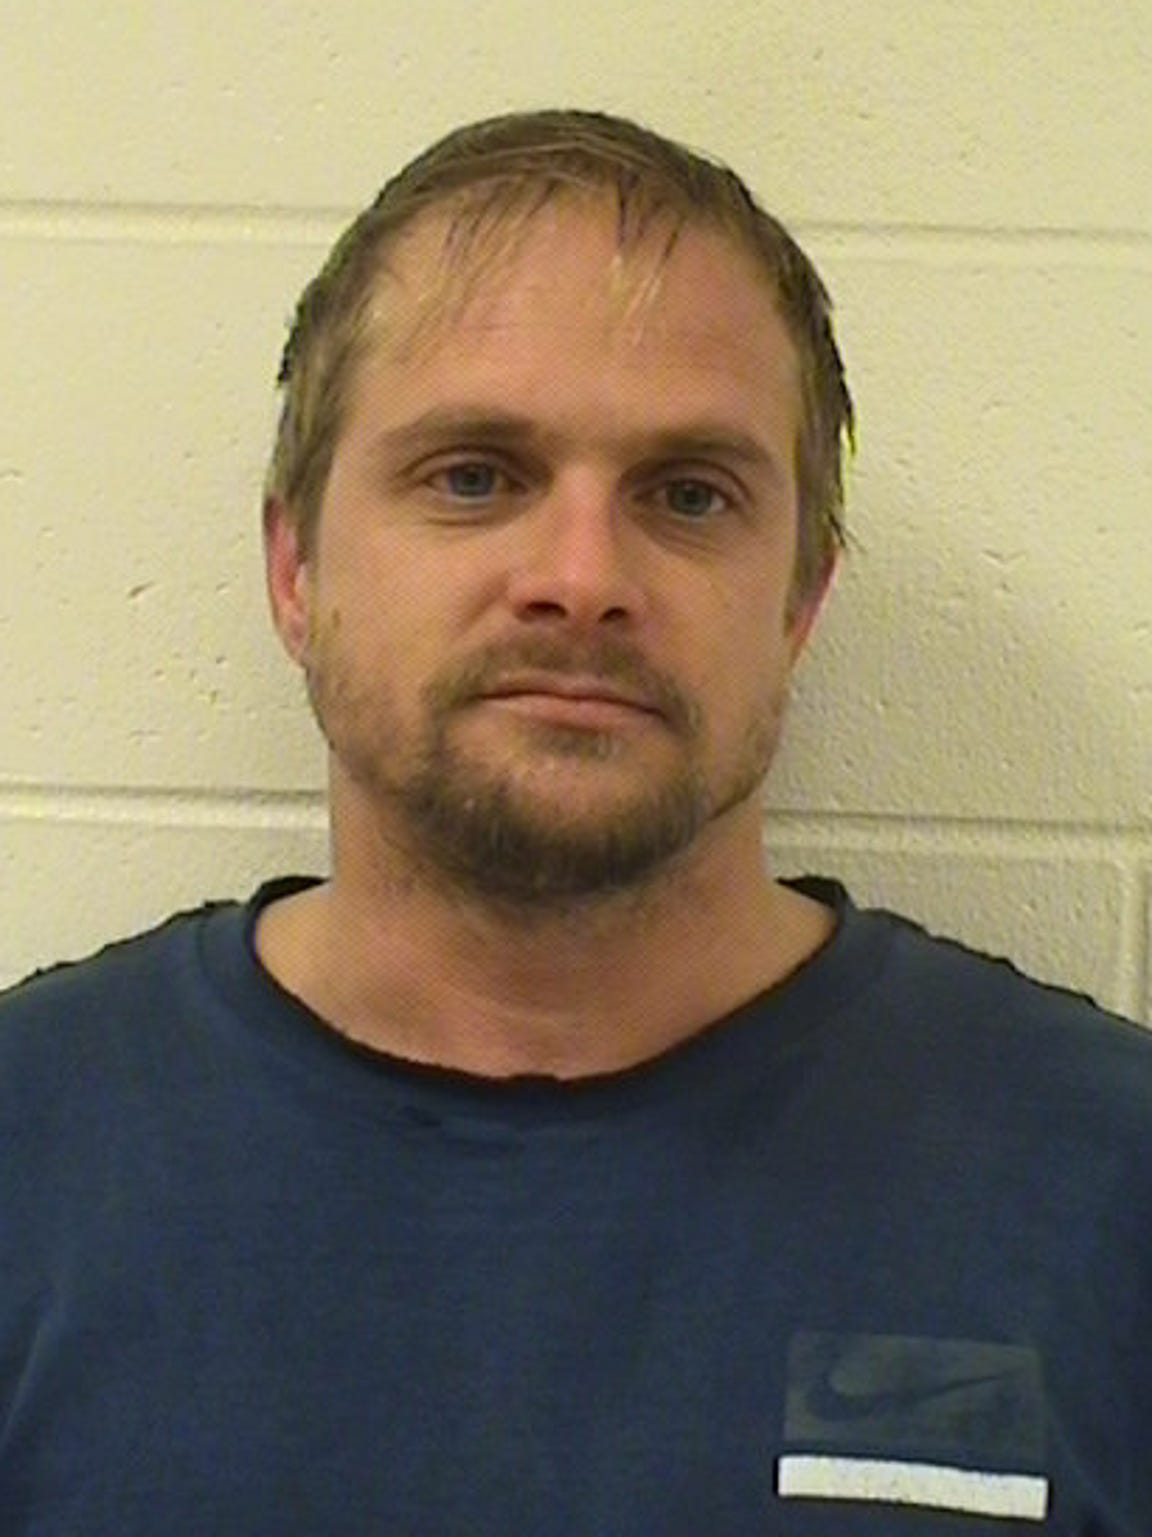 Mugshot of Bryan S. Kaseno from his fifth OWI.